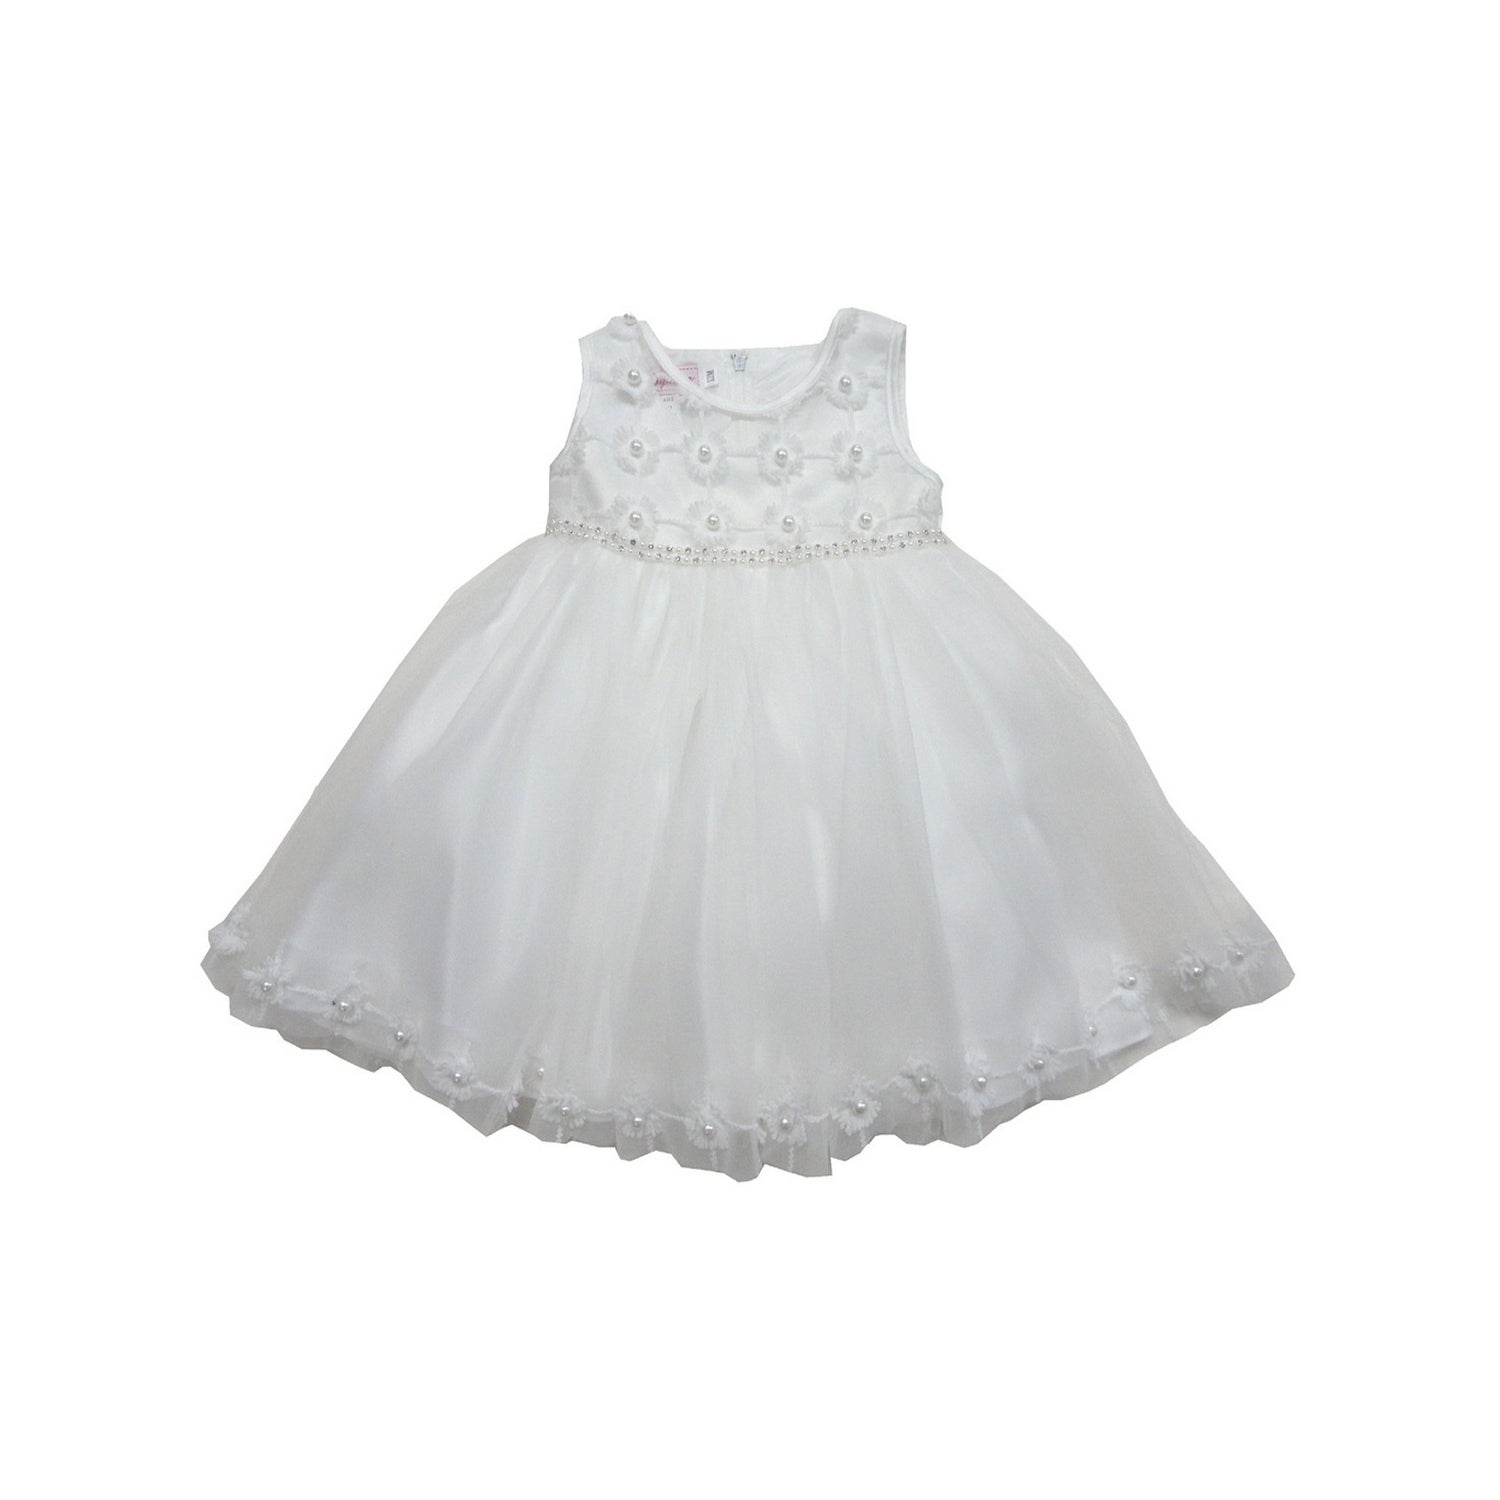 Little Girls Off White Floral Pearl Organza Embroidered Flower Girl